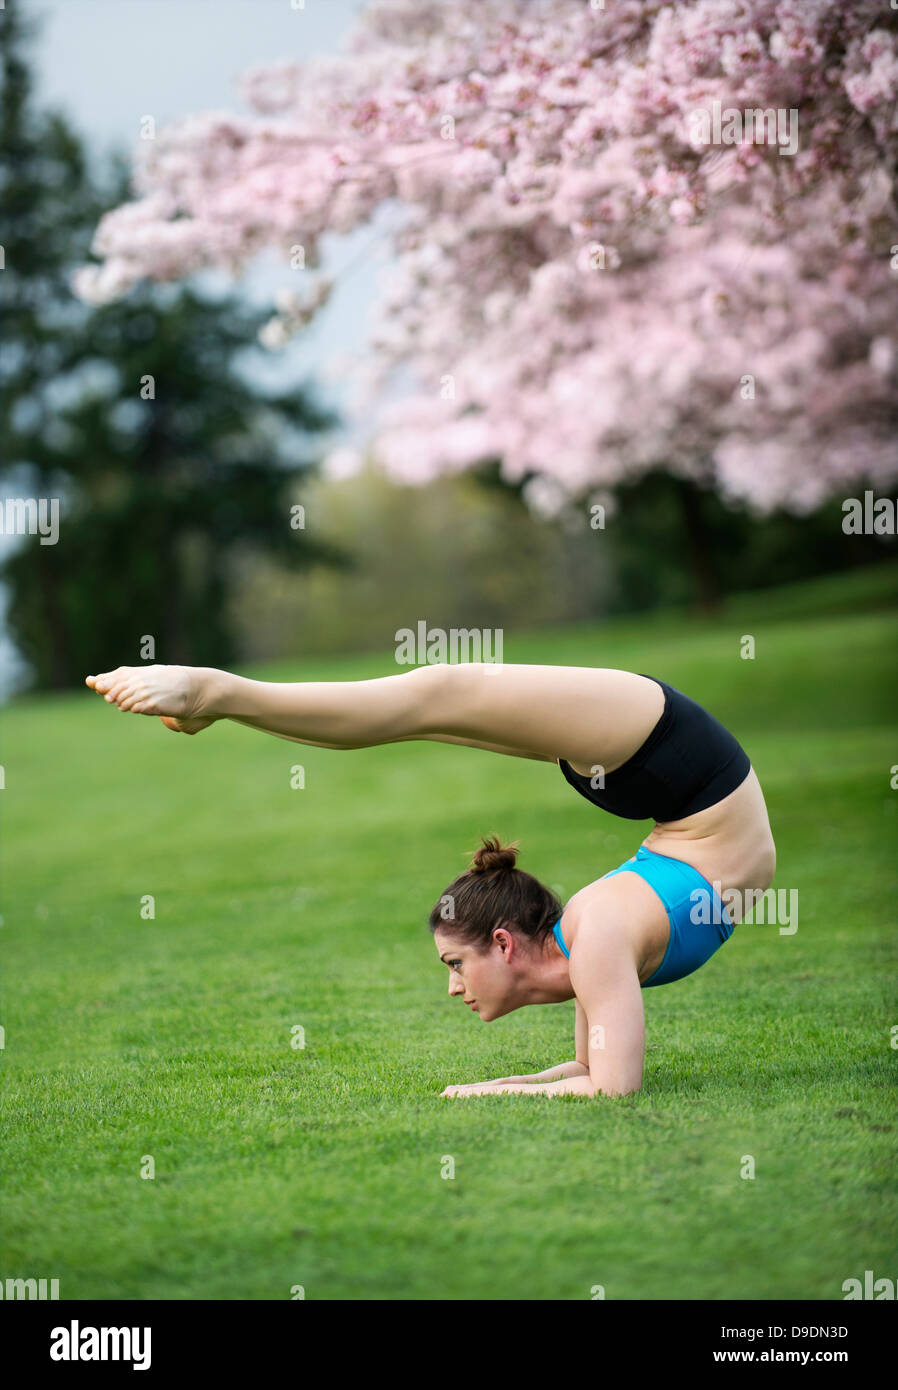 Acrobat performing stretches in park - Stock Image